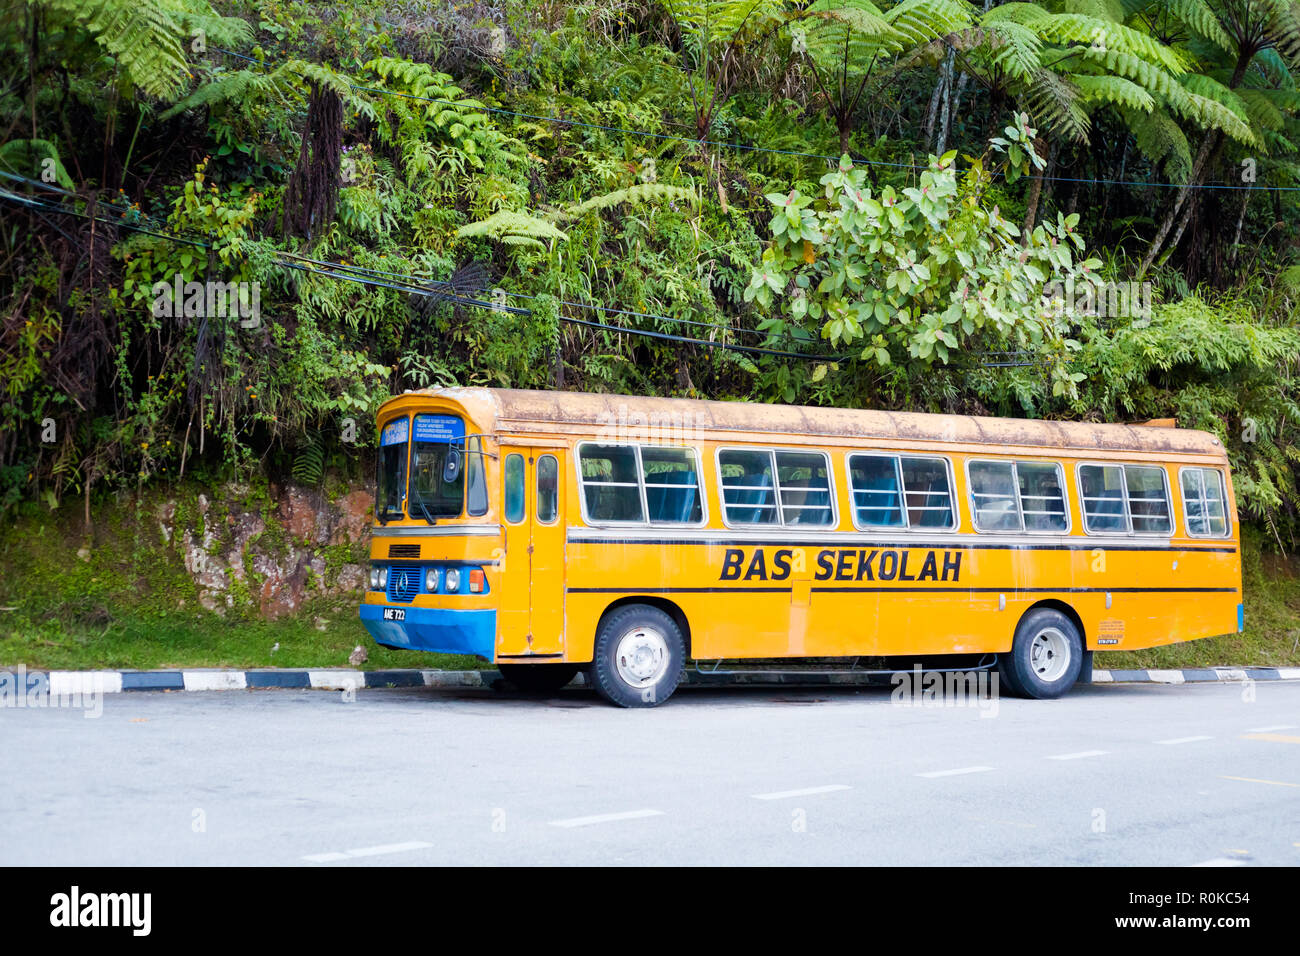 Beautiful landscape with yellow school bus taken in Tanah Rata in Cameron Highlands mountains in national park in Malaysia. Trasport in south east Asi Stock Photo